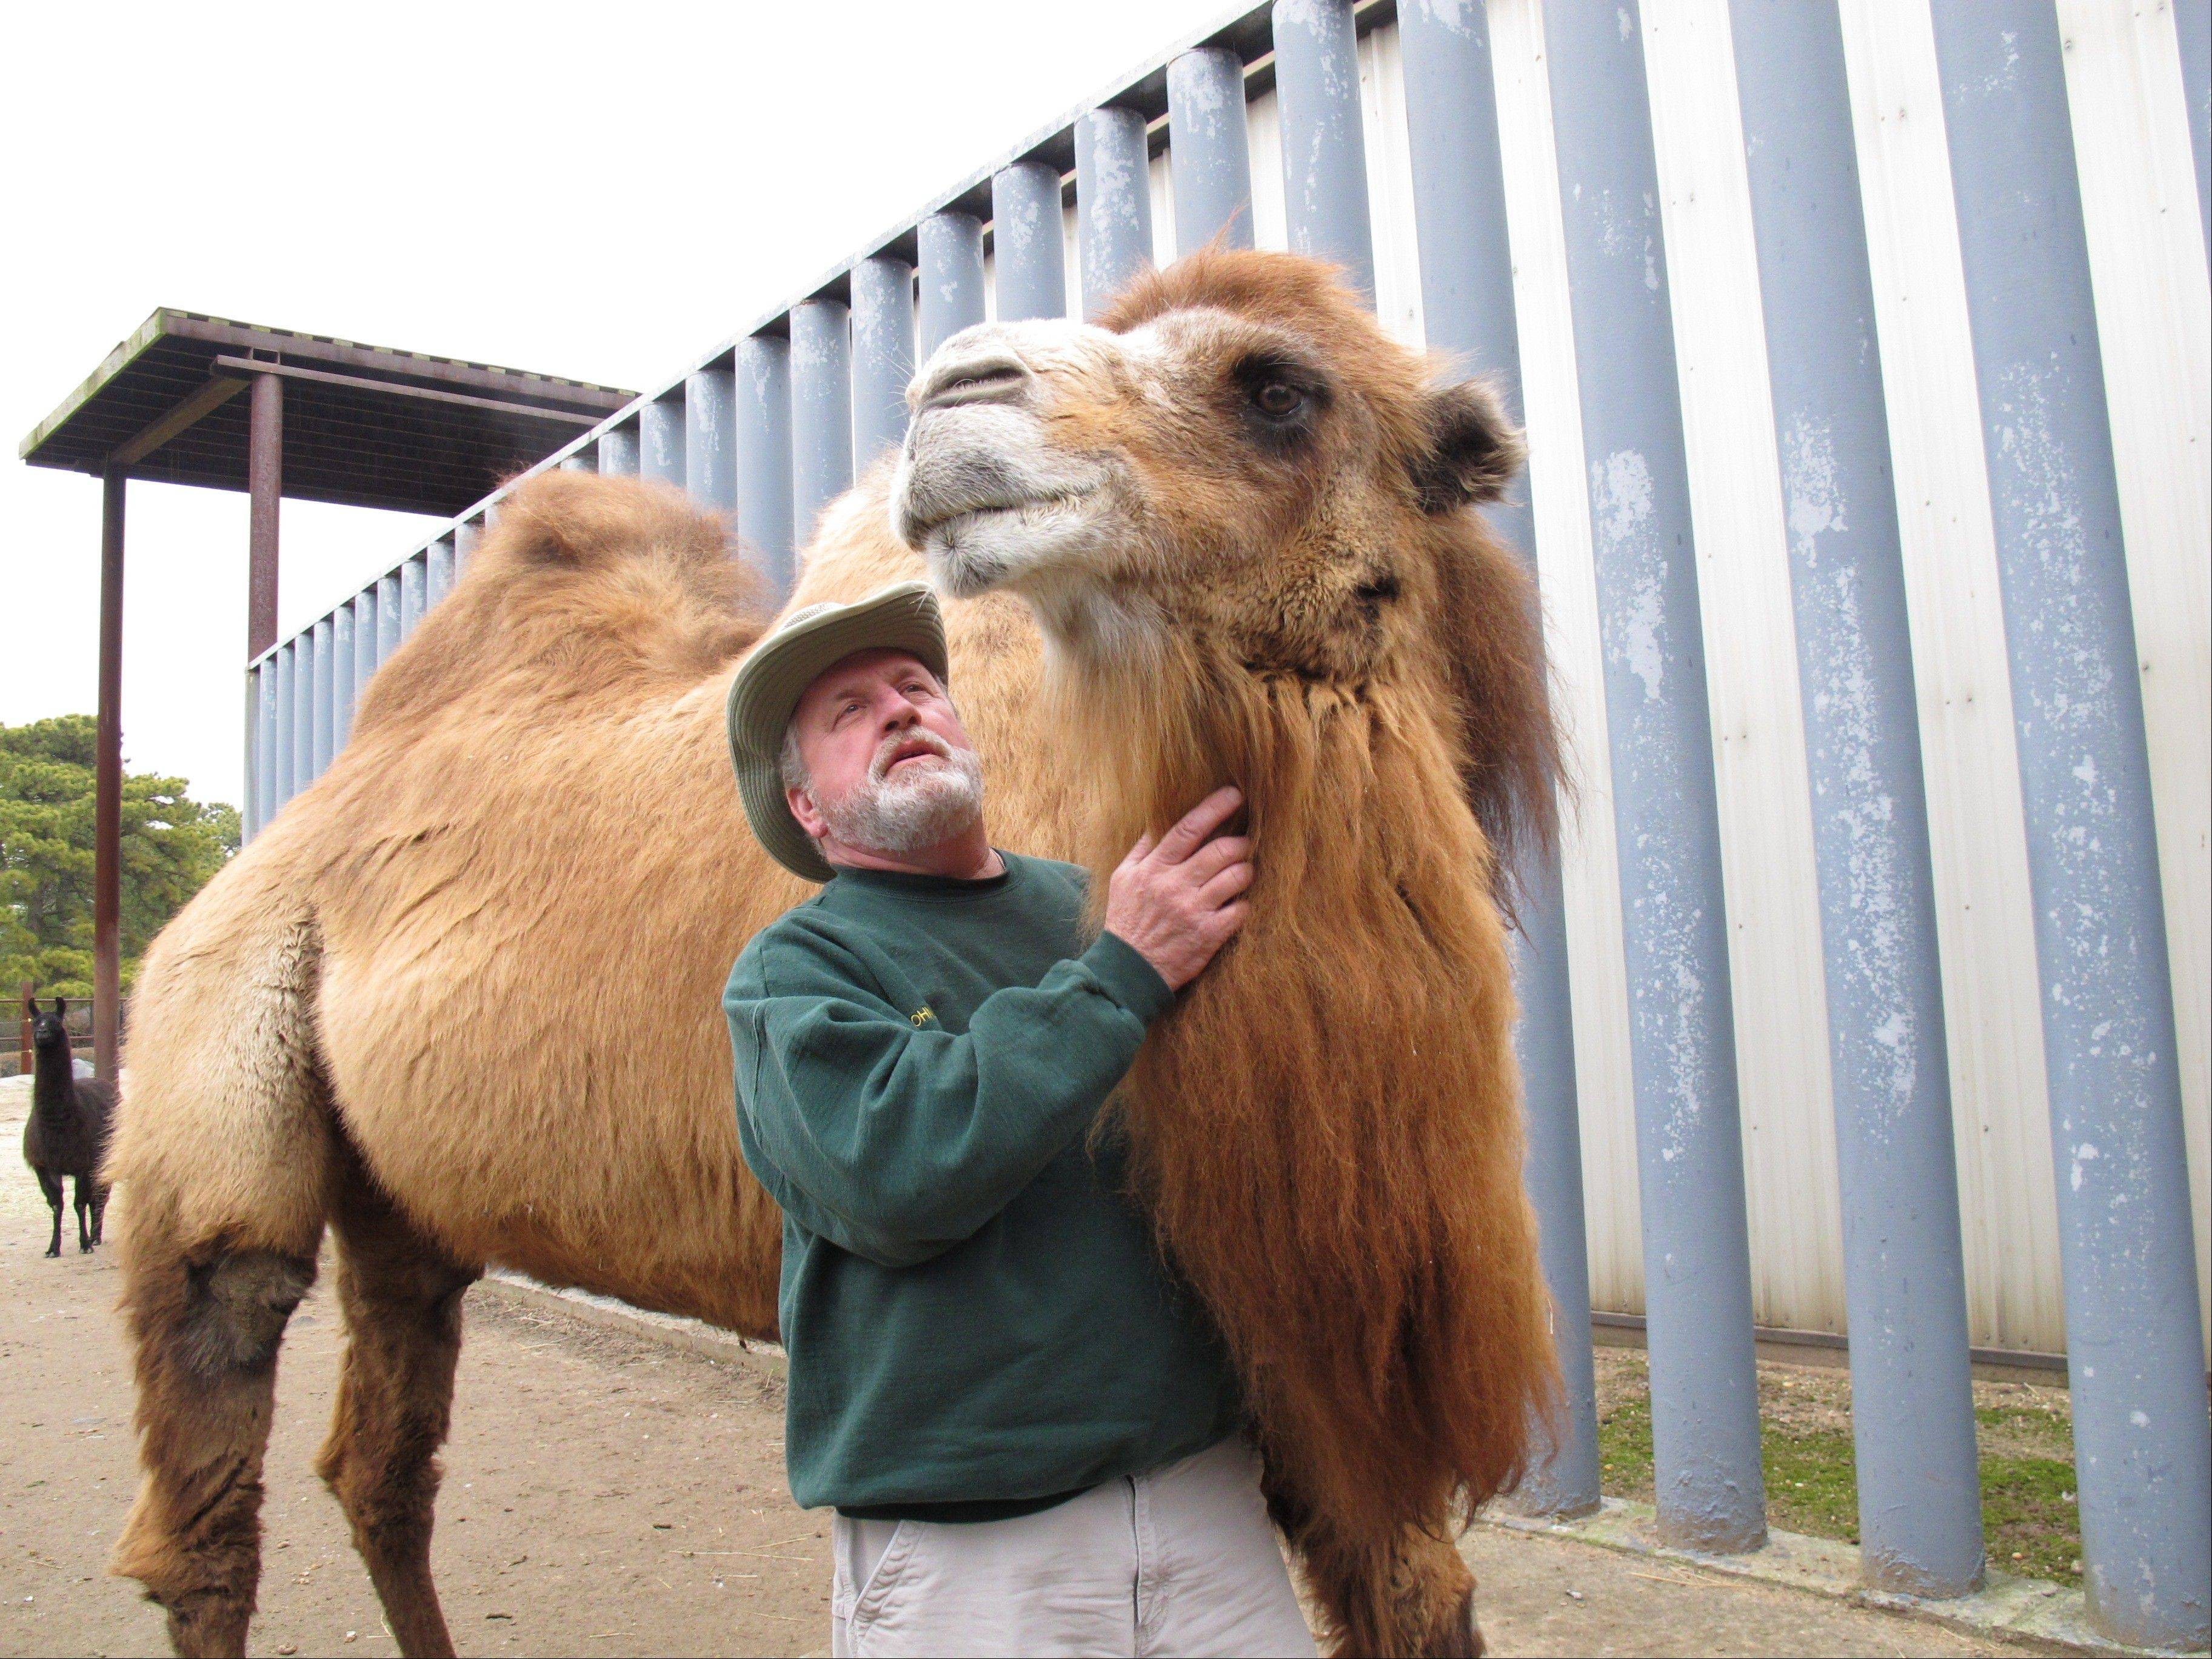 Princess, left, a Bactrian camel famous for her ability to correctly predict the winner of football games, was euthanized Tuesday, Jan. 14, 2014 after arthritis made it impossible for the 26-year-old animal to stand, said Bergmann, just weeks before the state is set to host its first Super Bowl.